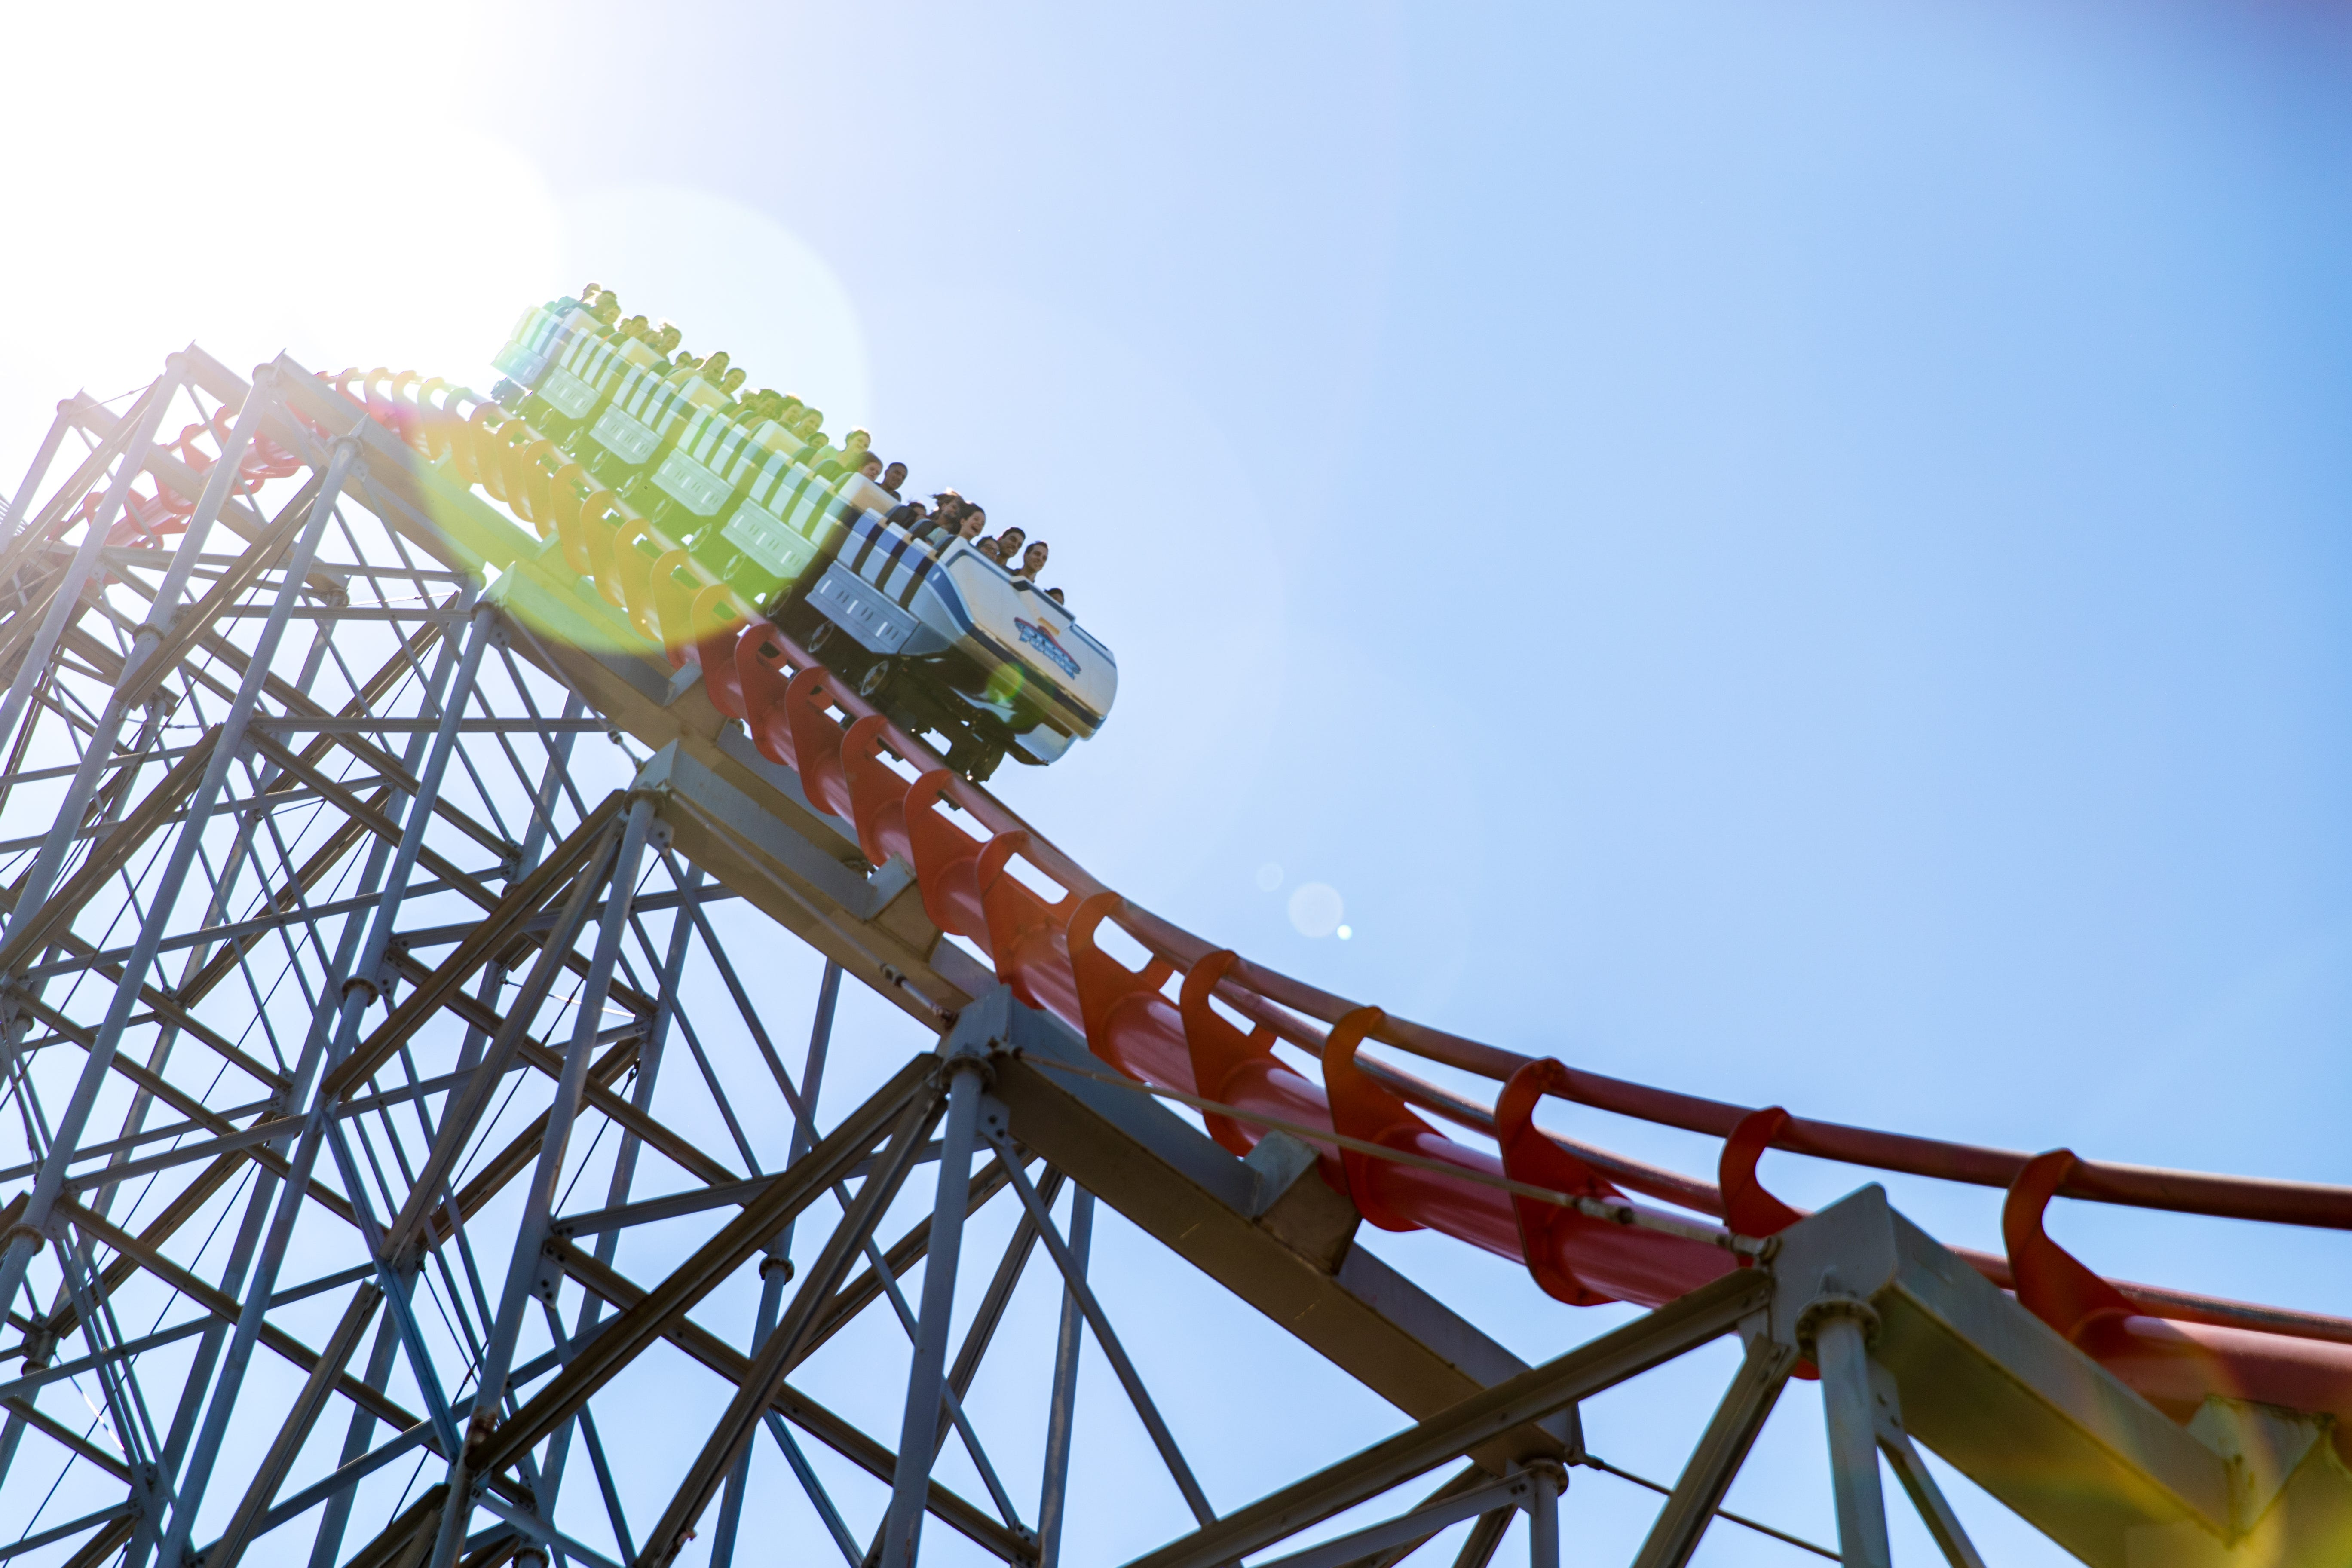 Steel Force Mega Coaster is one of multiple roller coasters available at Dorney Park this season.